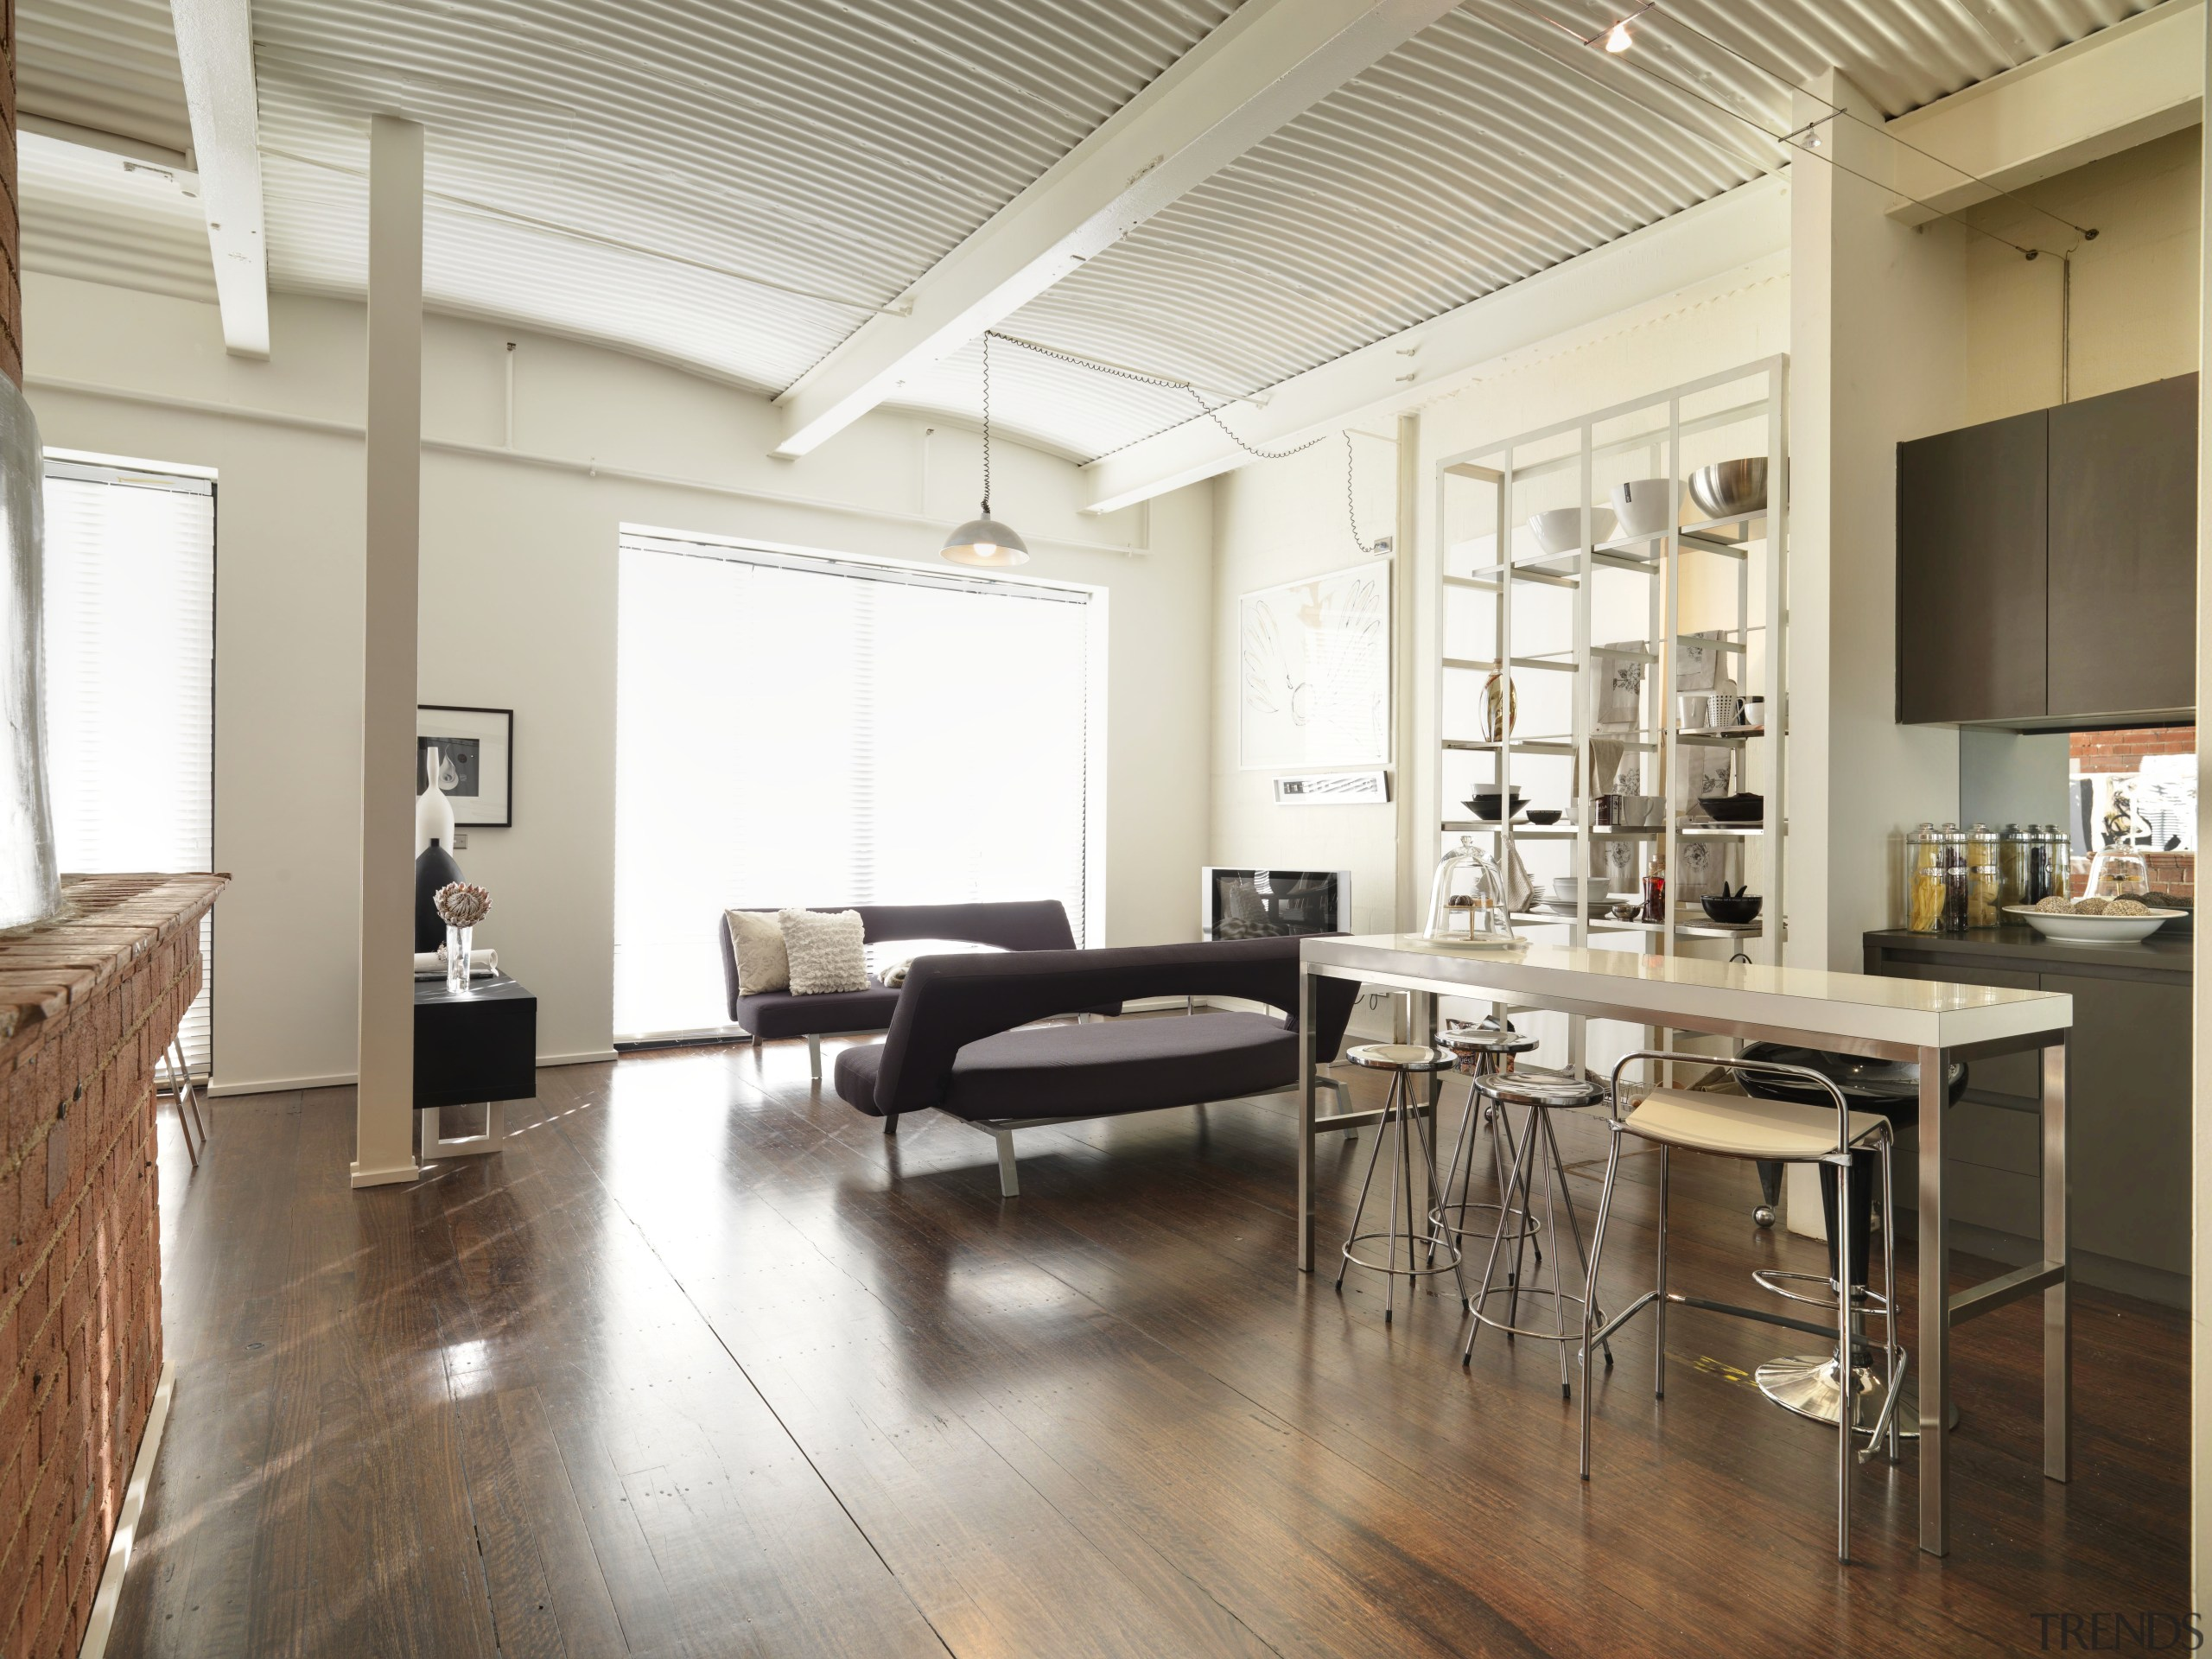 View of open-plan living and kitchen area with ceiling, floor, flooring, hardwood, interior design, laminate flooring, living room, loft, real estate, wood, wood flooring, white, brown